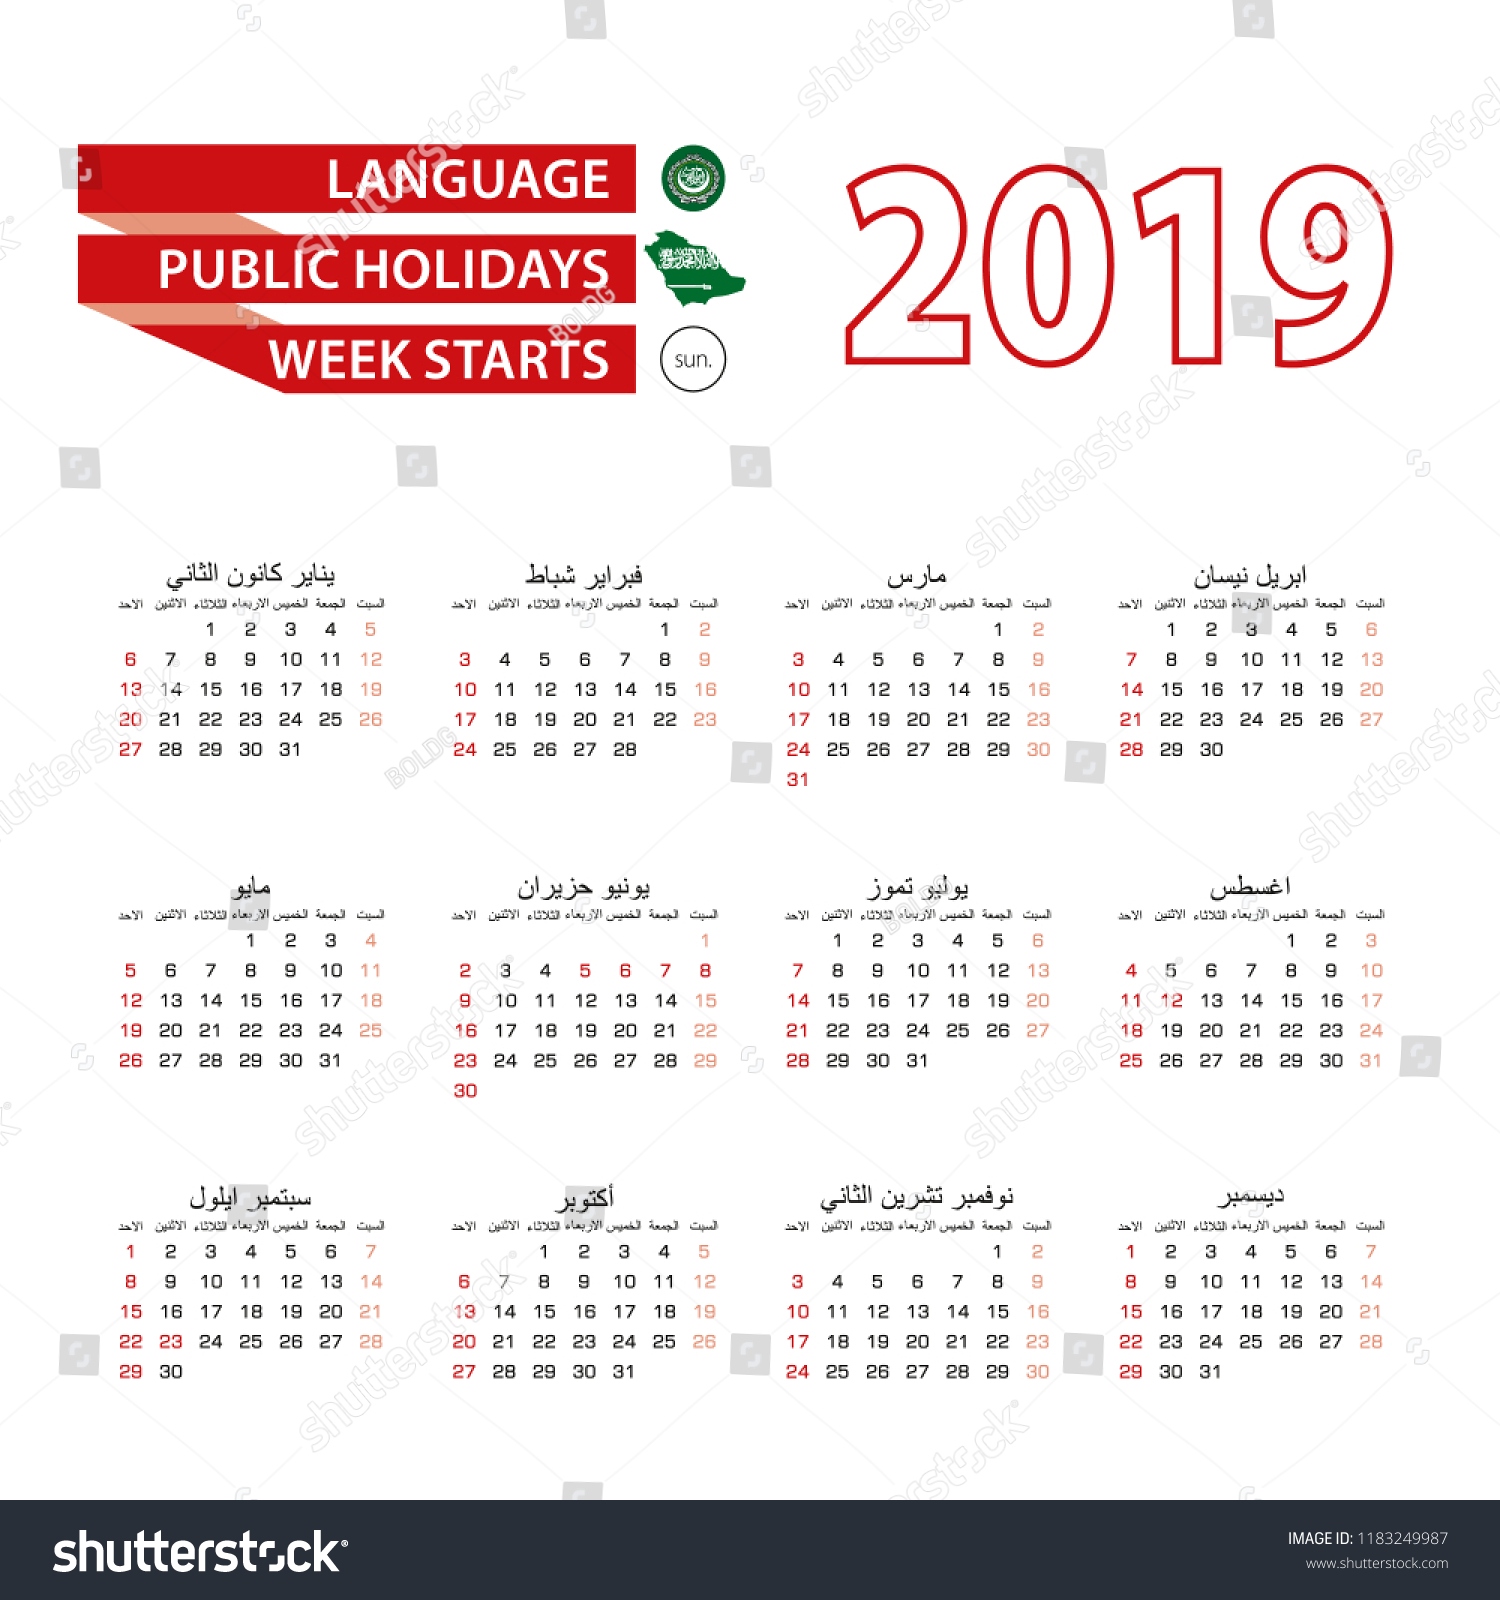 Calendar For Year 2019 Saudi Arabia With Arabic Language Public Holidays Stock Vector Royalty